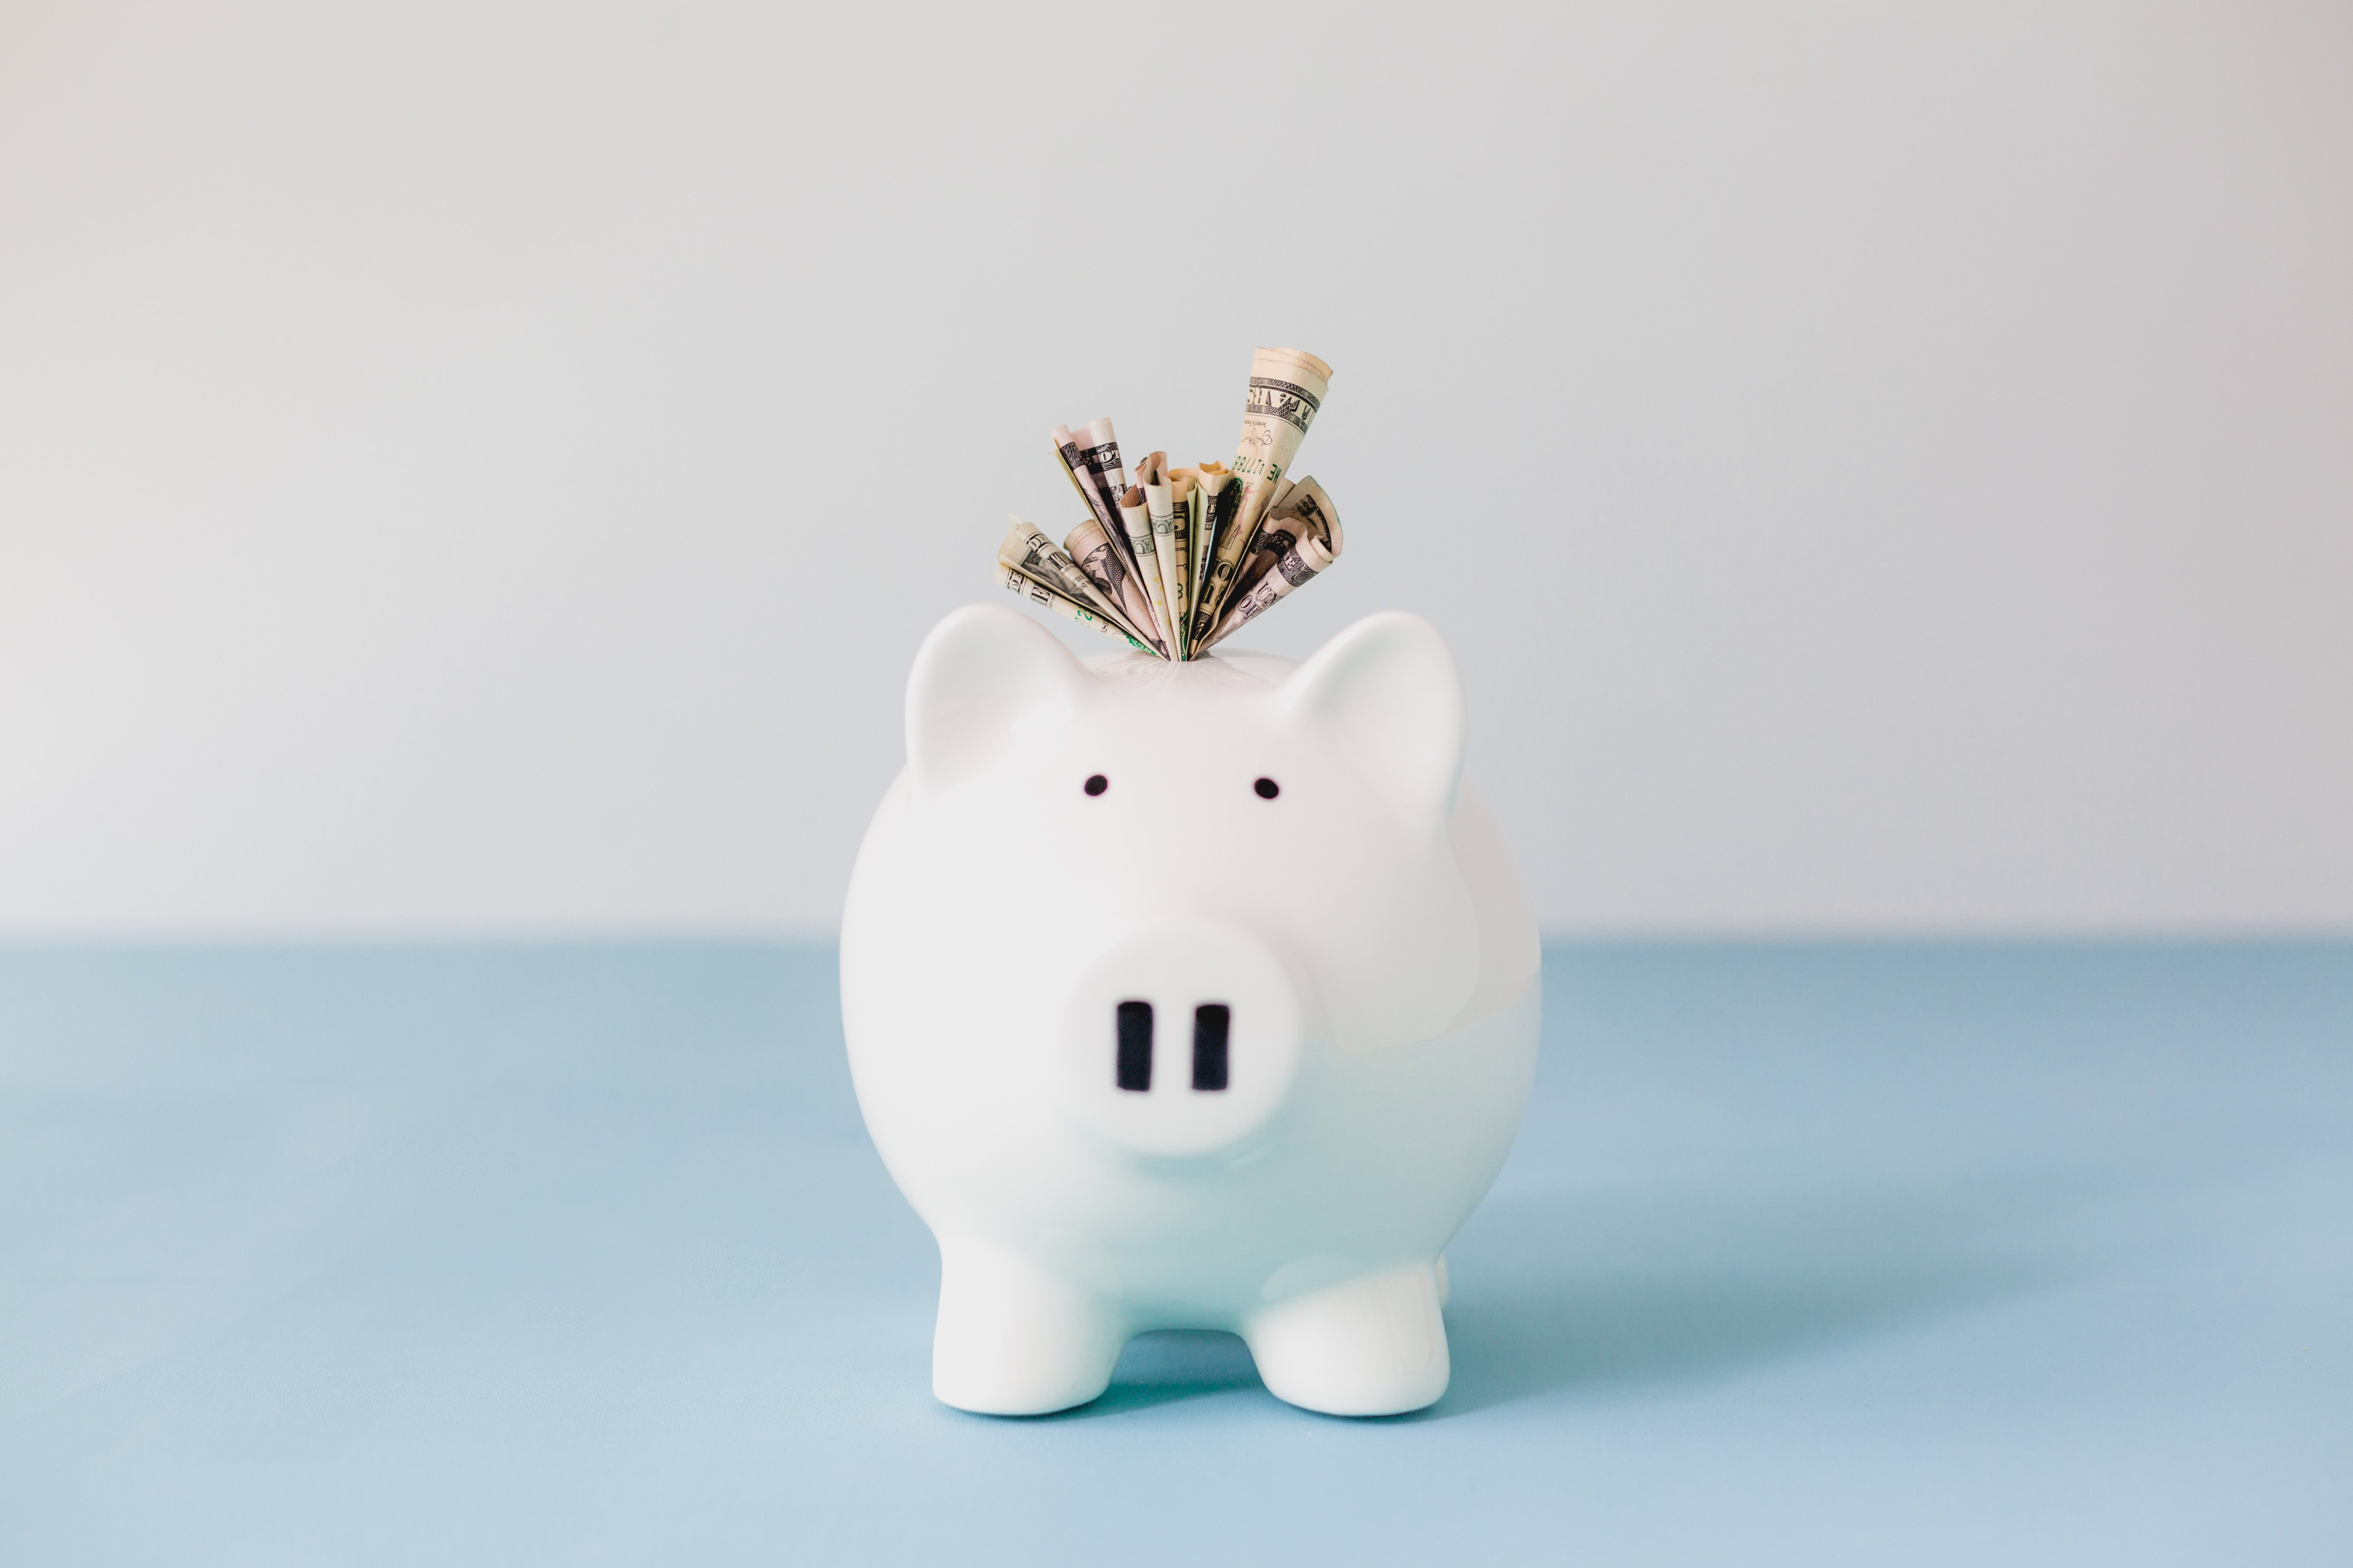 white piggy bank stuffed with money on a blue and white background